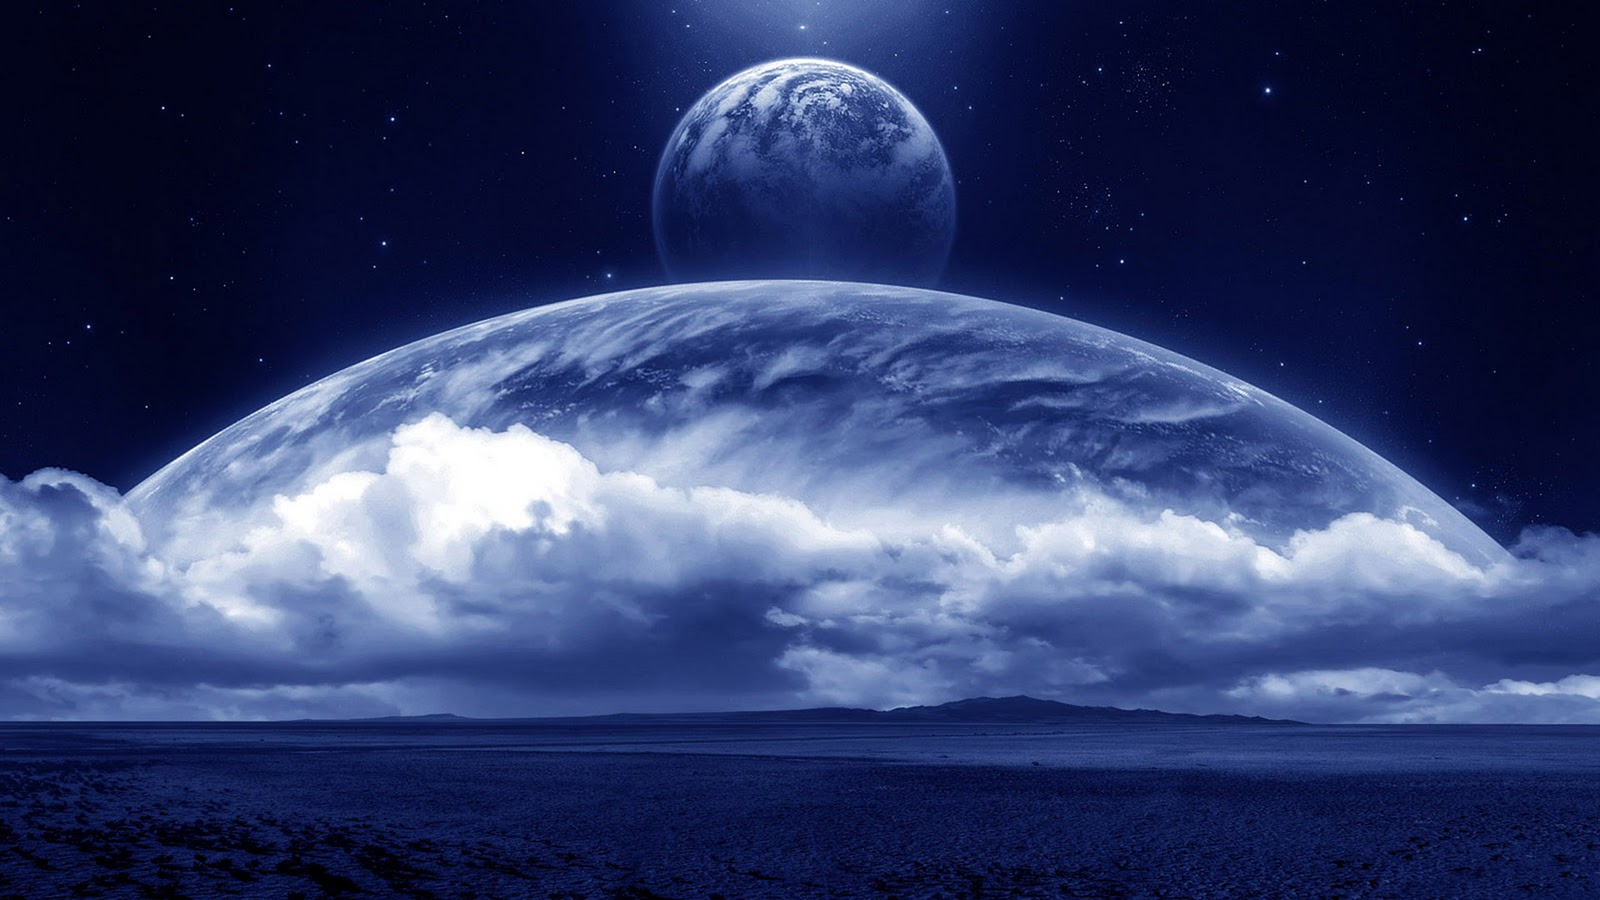 3d Space Background Wallpaper: Android Phones Wallpapers: Android Wallpaper 3D Space